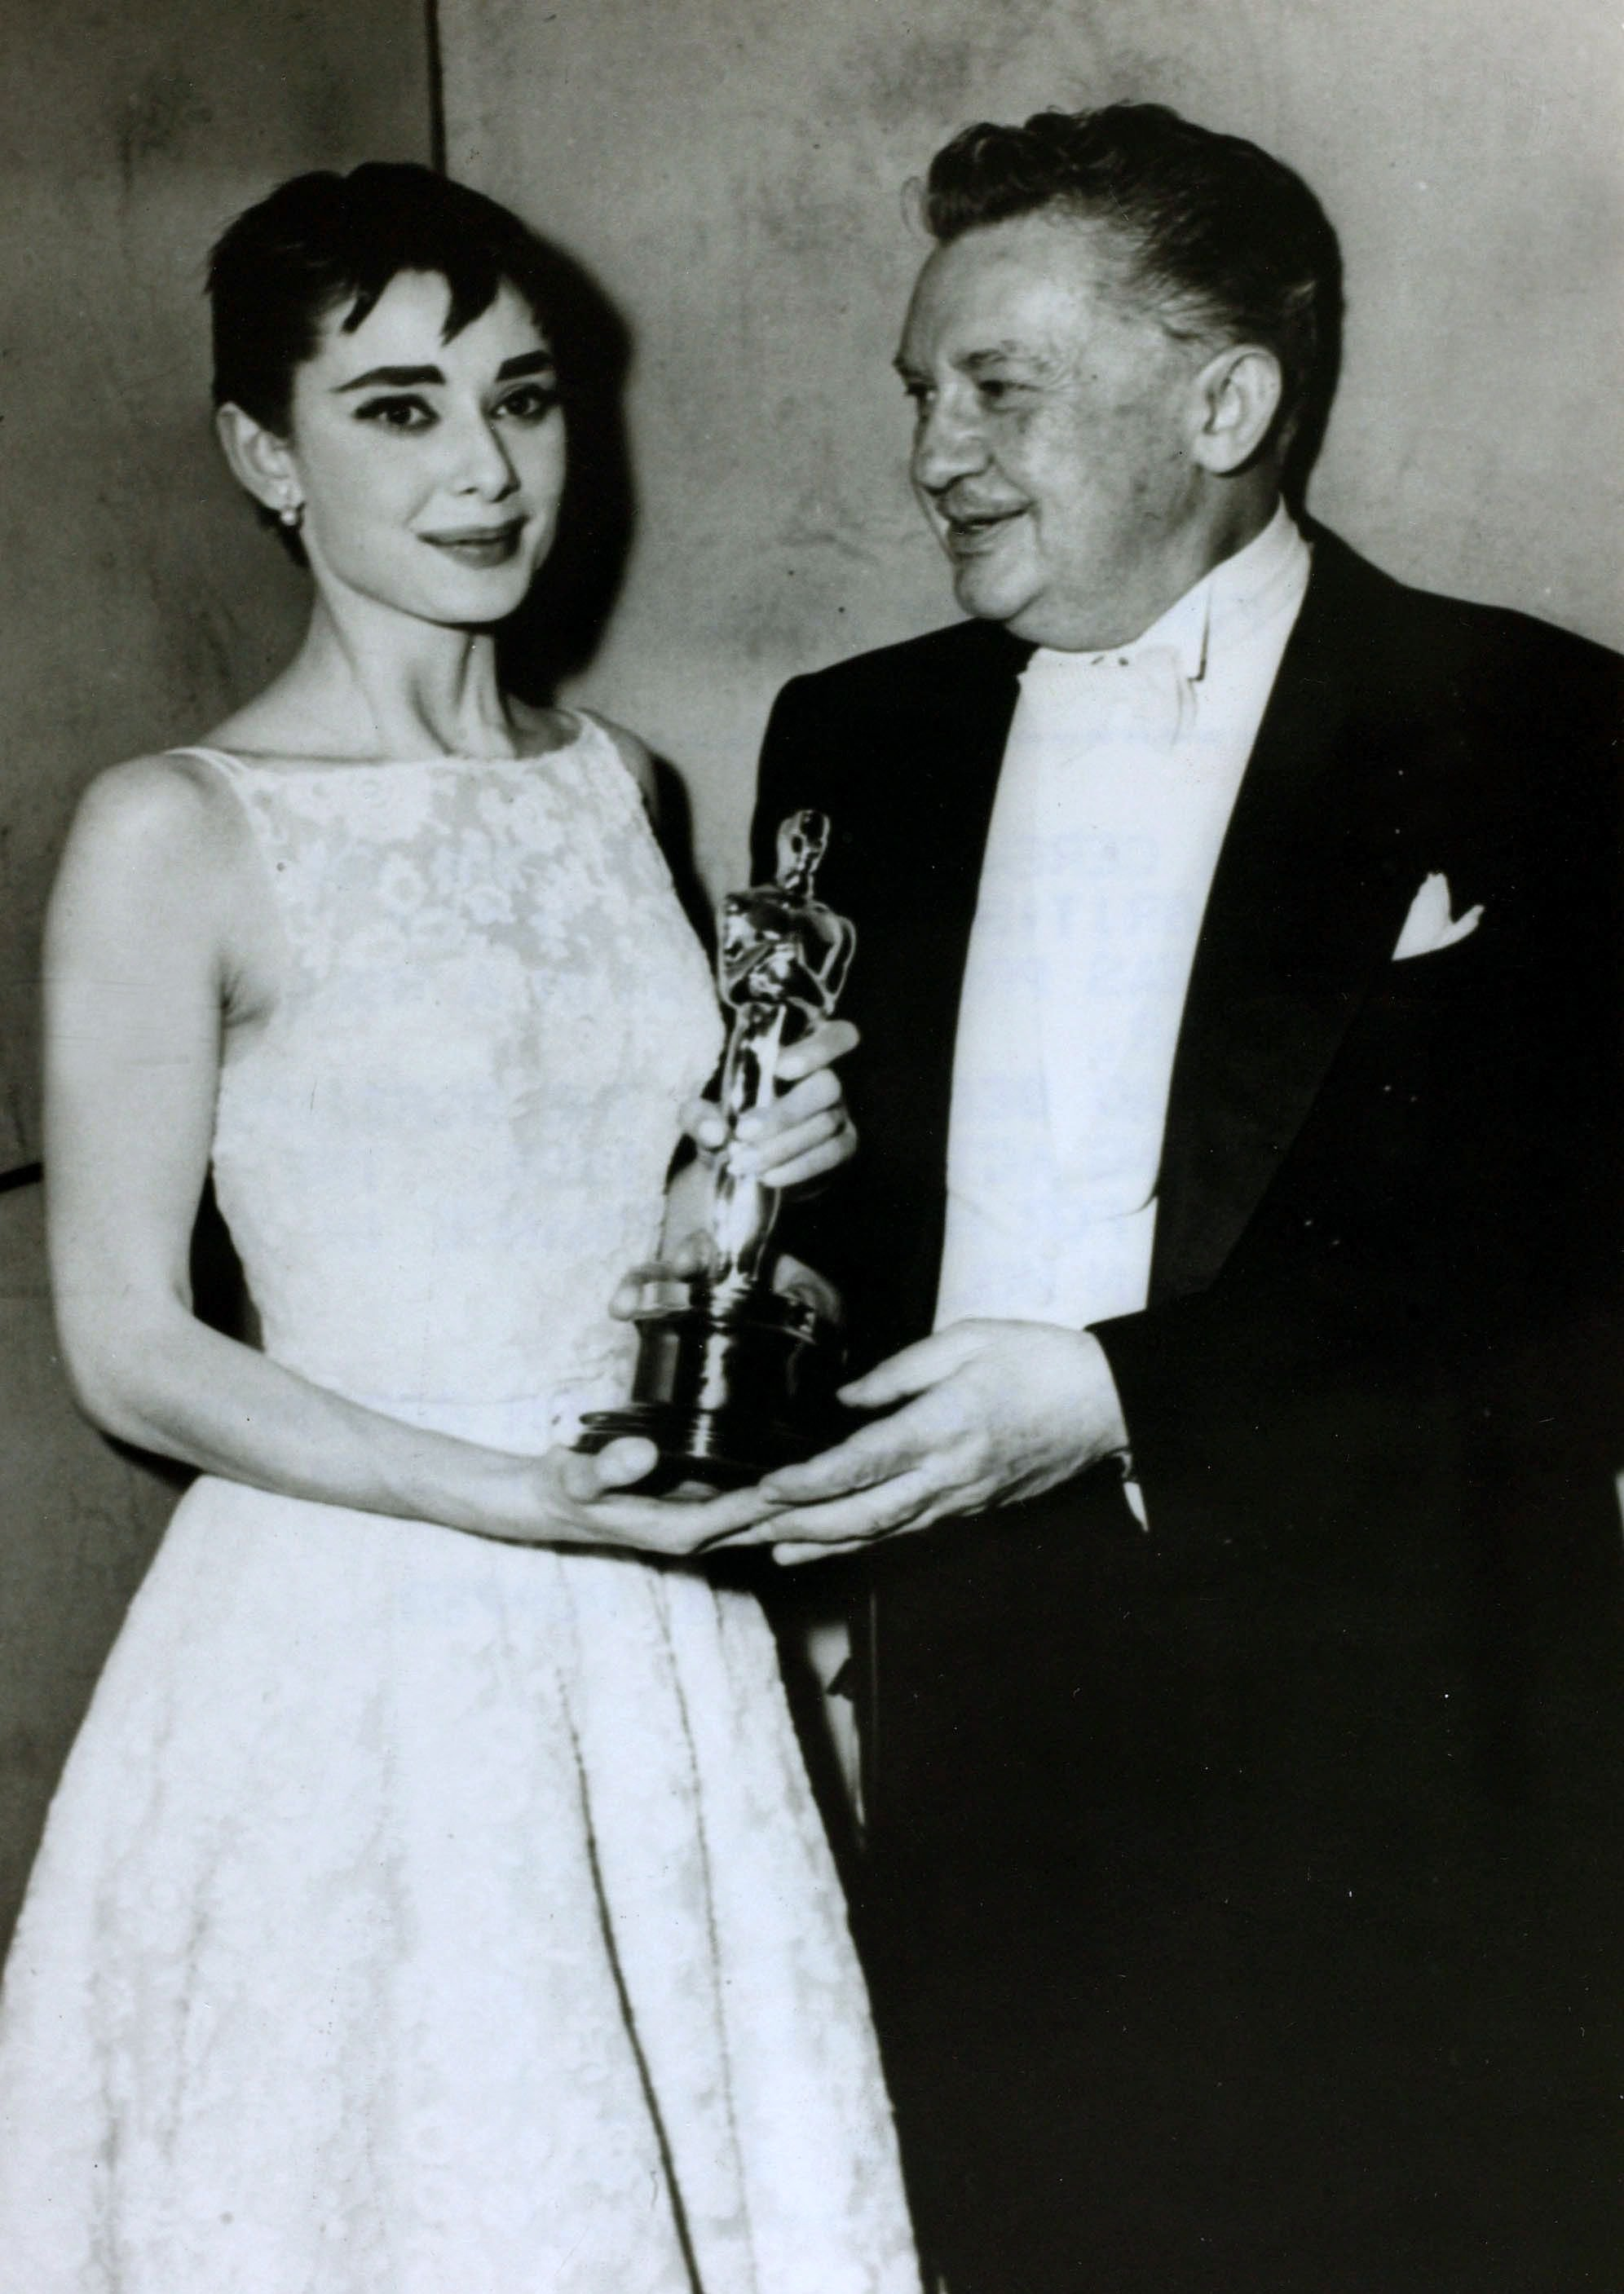 """Audrey Hepburn receives her Oscar as Best Actress for her role in """"Roman Holiday""""   Source: Getty Images"""